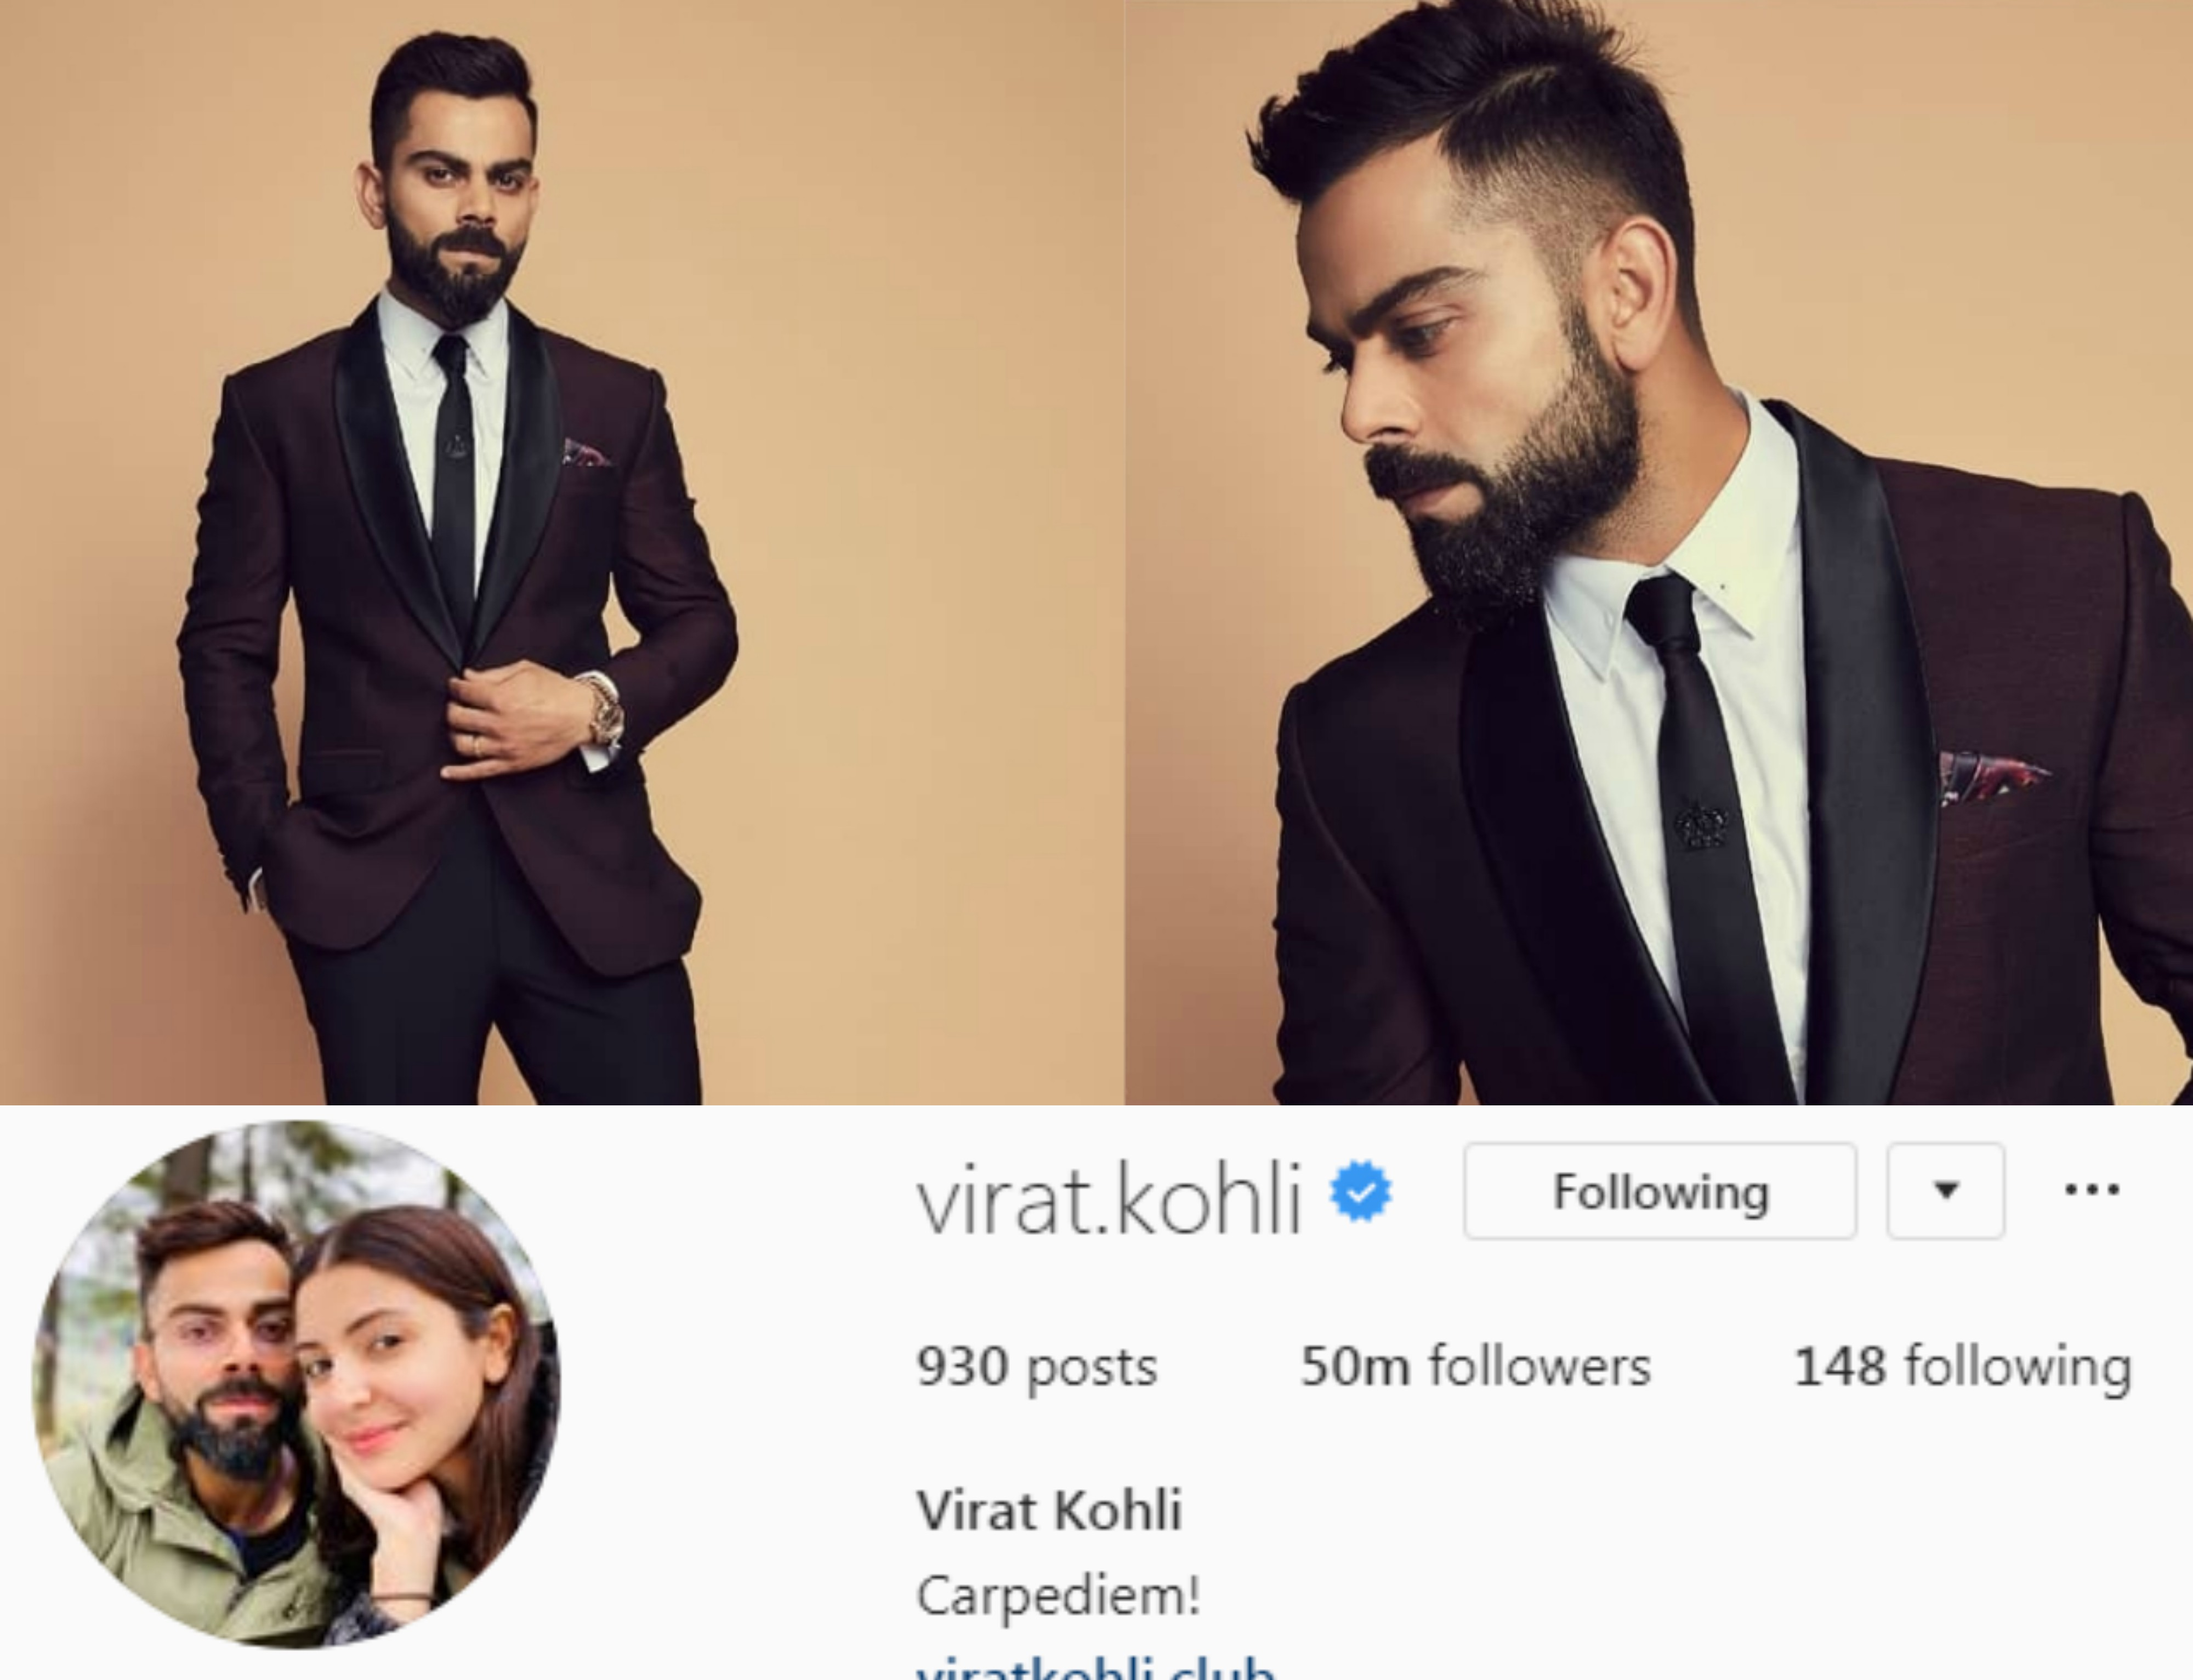 Kohli is the 1st Indian with 50M Instagram fans   Instagram